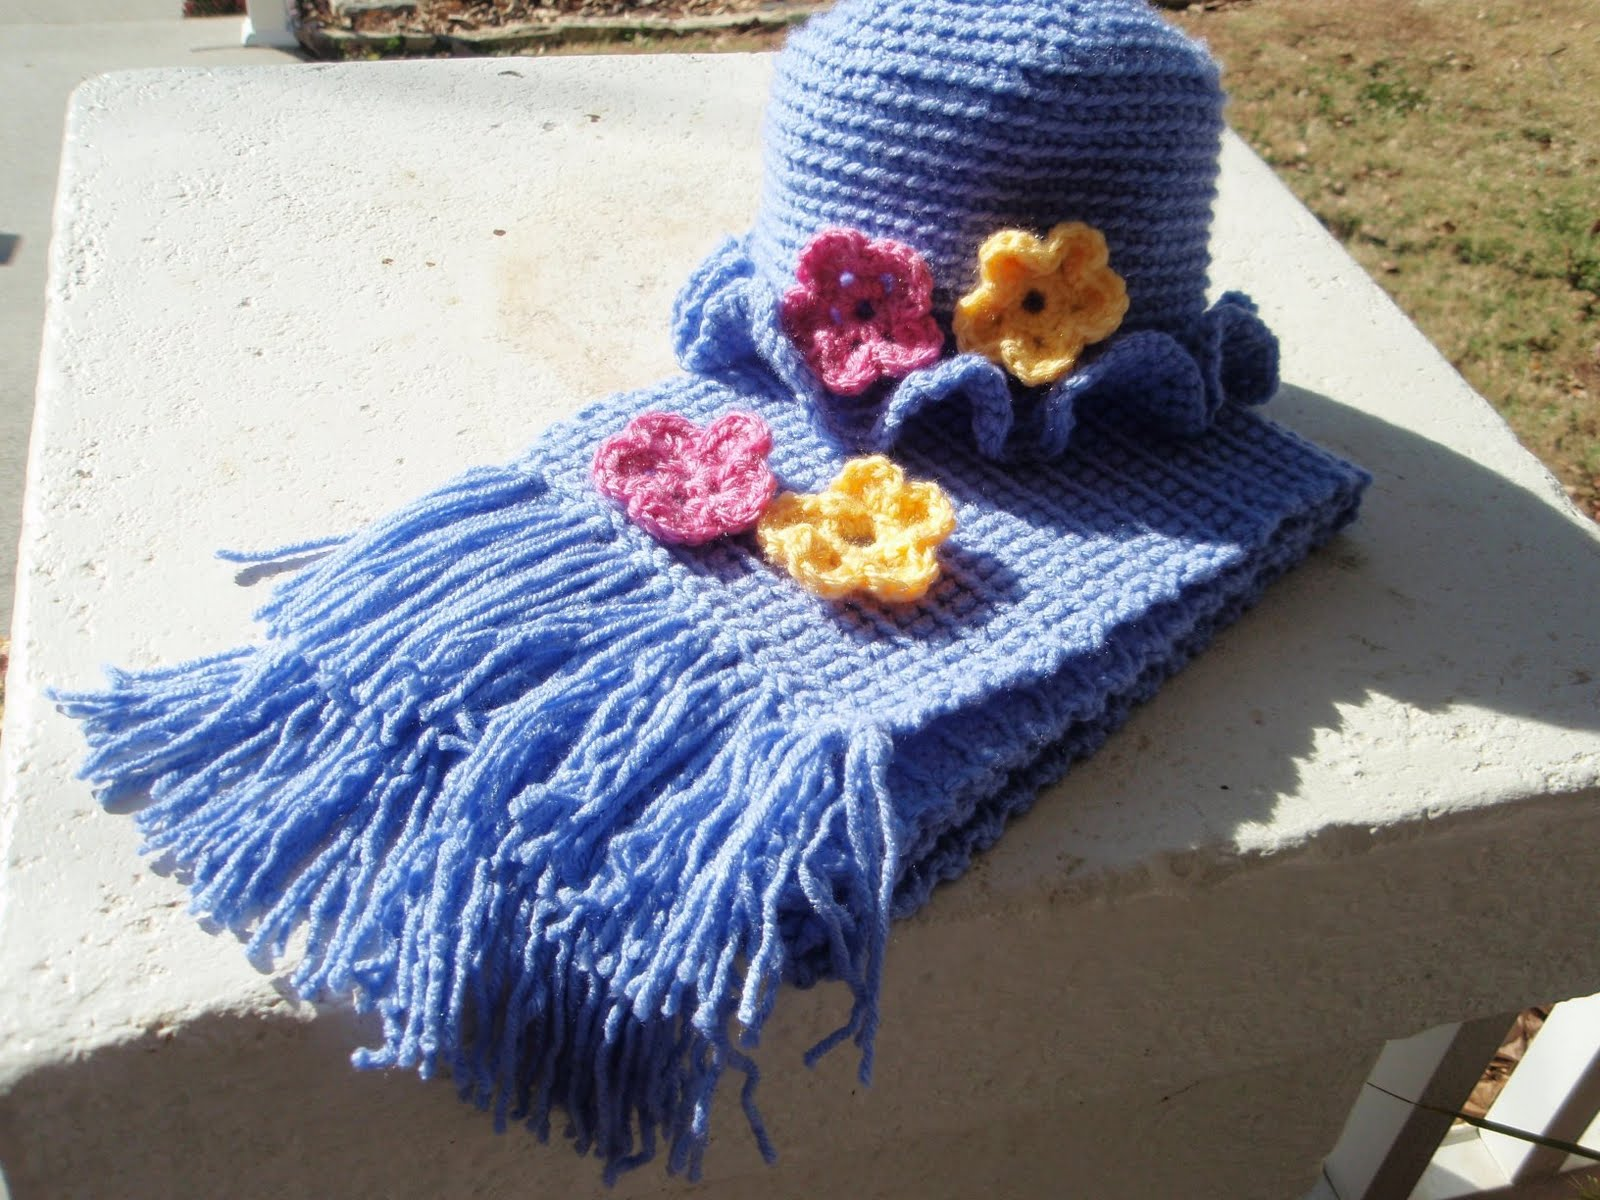 Free Knitting Pattern For Hat Scarf Combo : CROCHETED HAT PATTERN SCARF - Crochet and Knitting Patterns